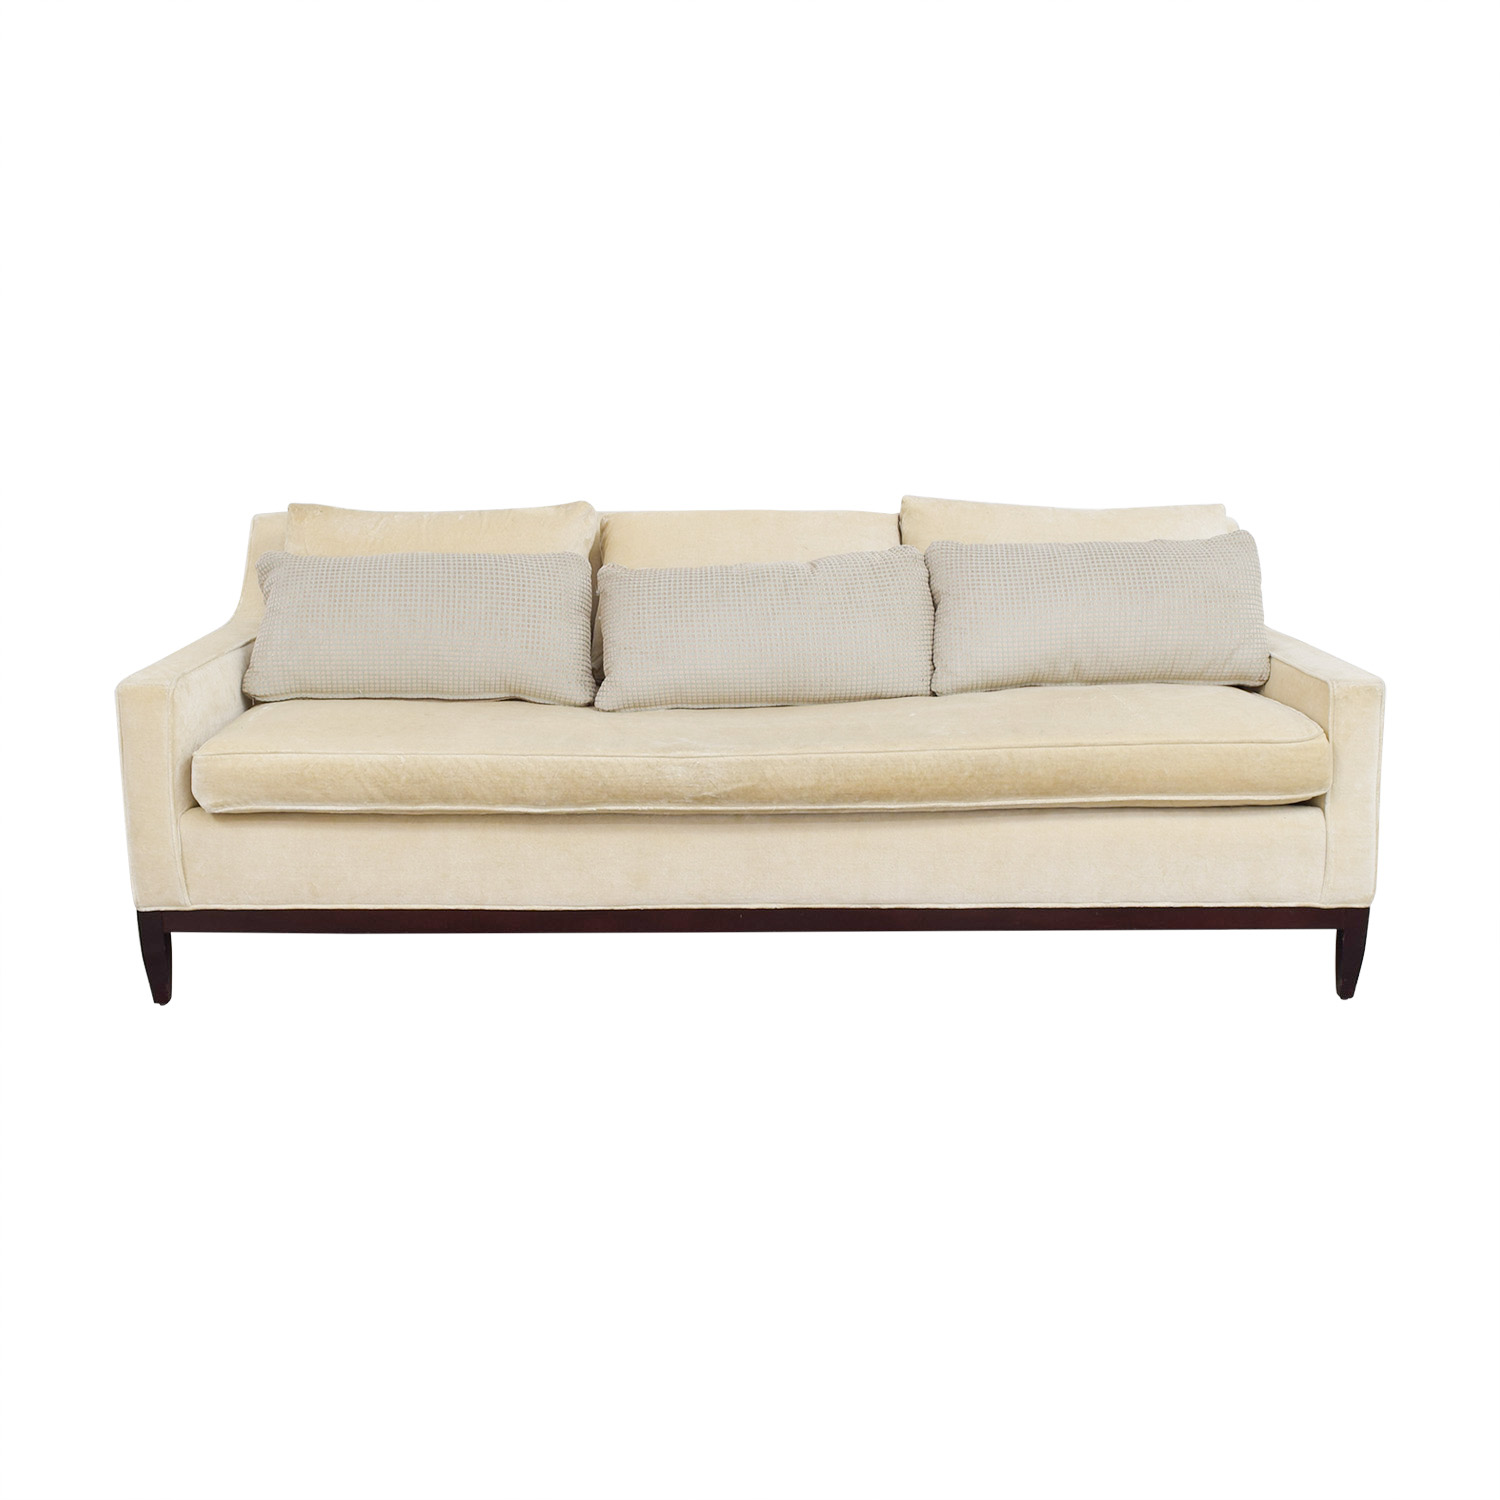 Custom Single Cushion Beige Couch Online